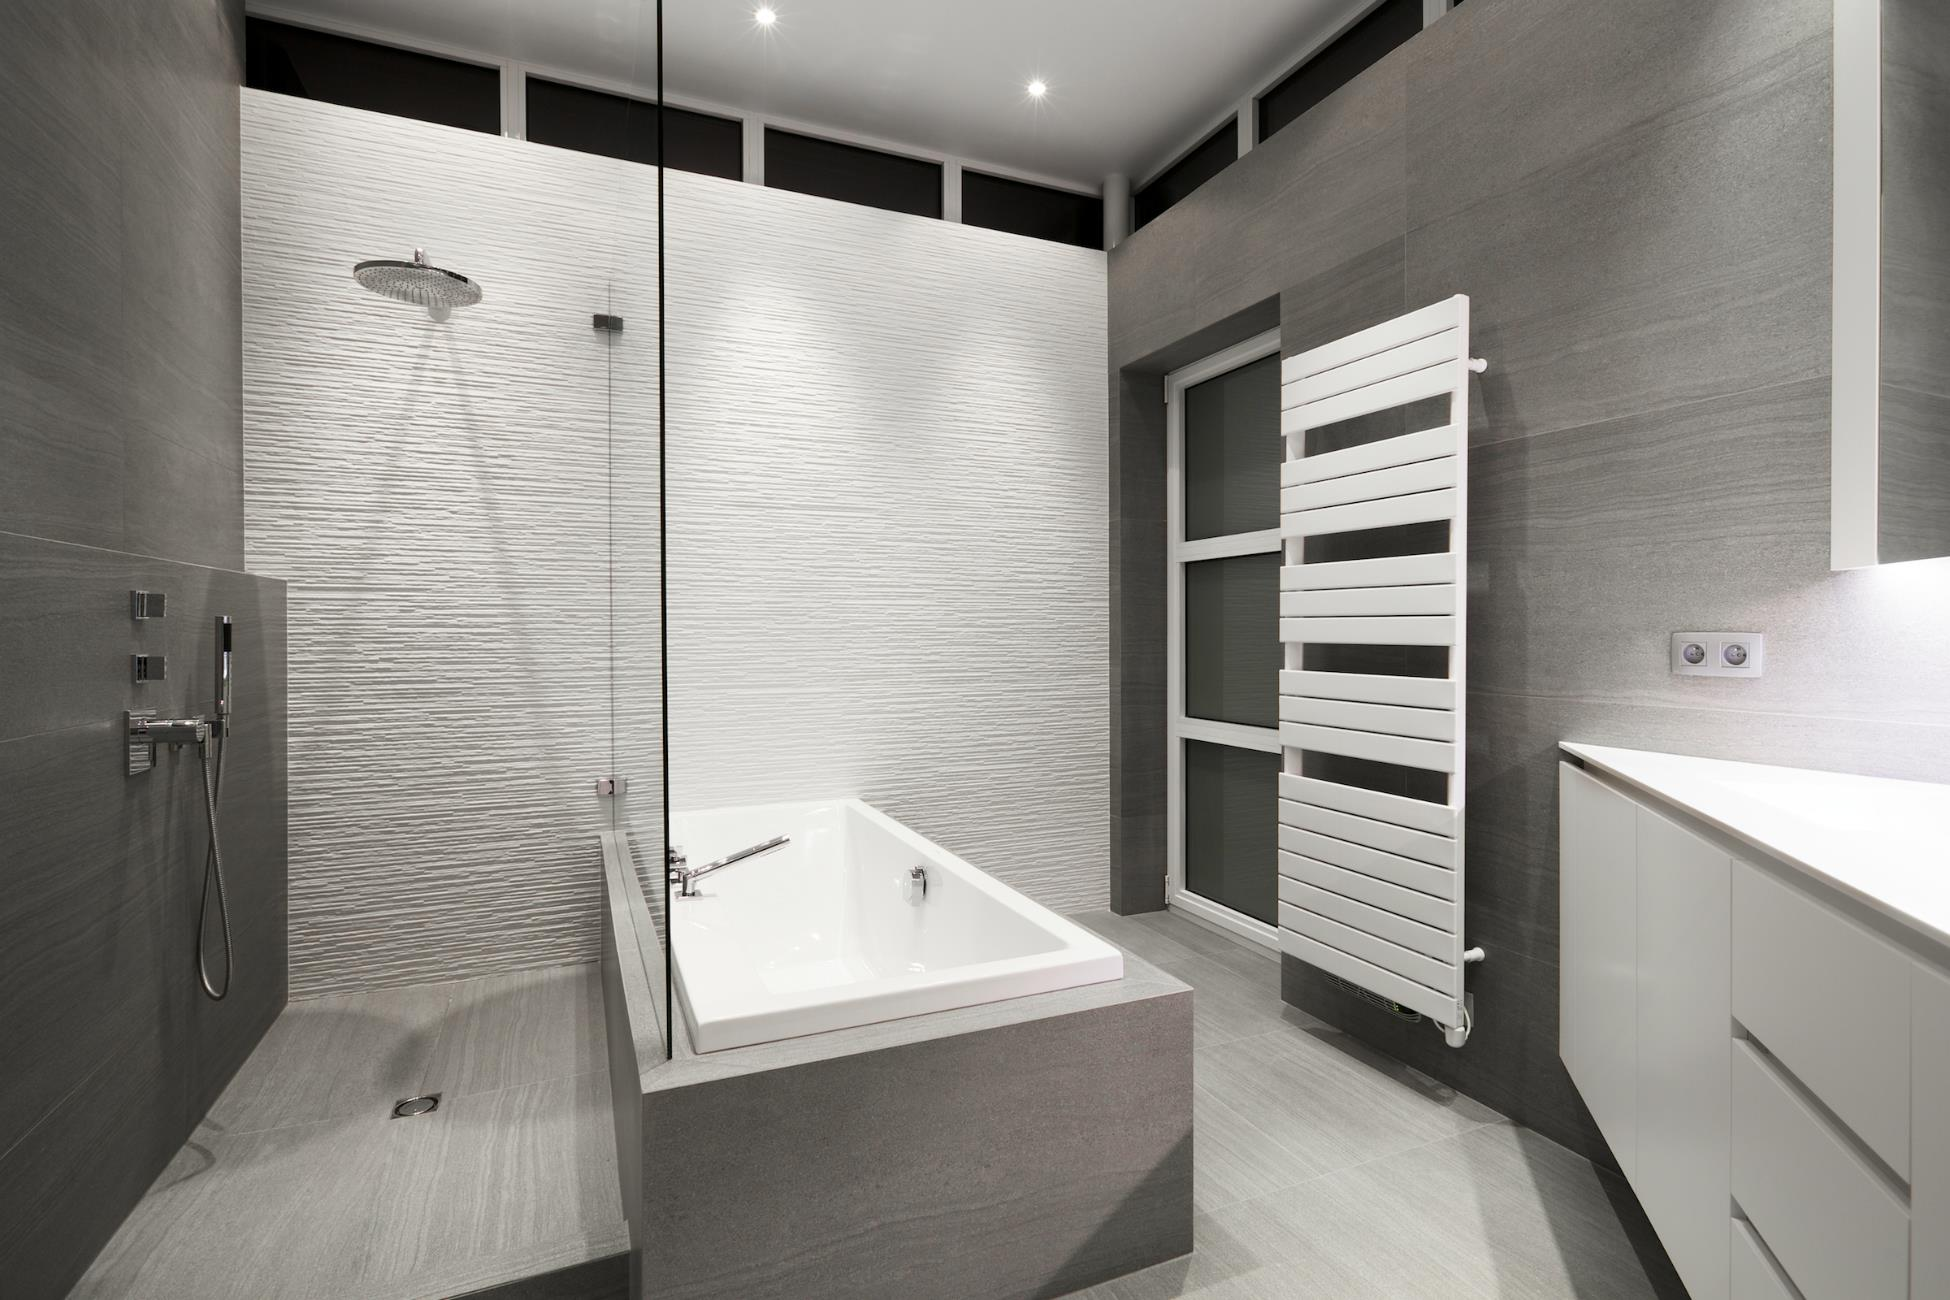 salle de bain haut de gamme avec douche italienne. Black Bedroom Furniture Sets. Home Design Ideas